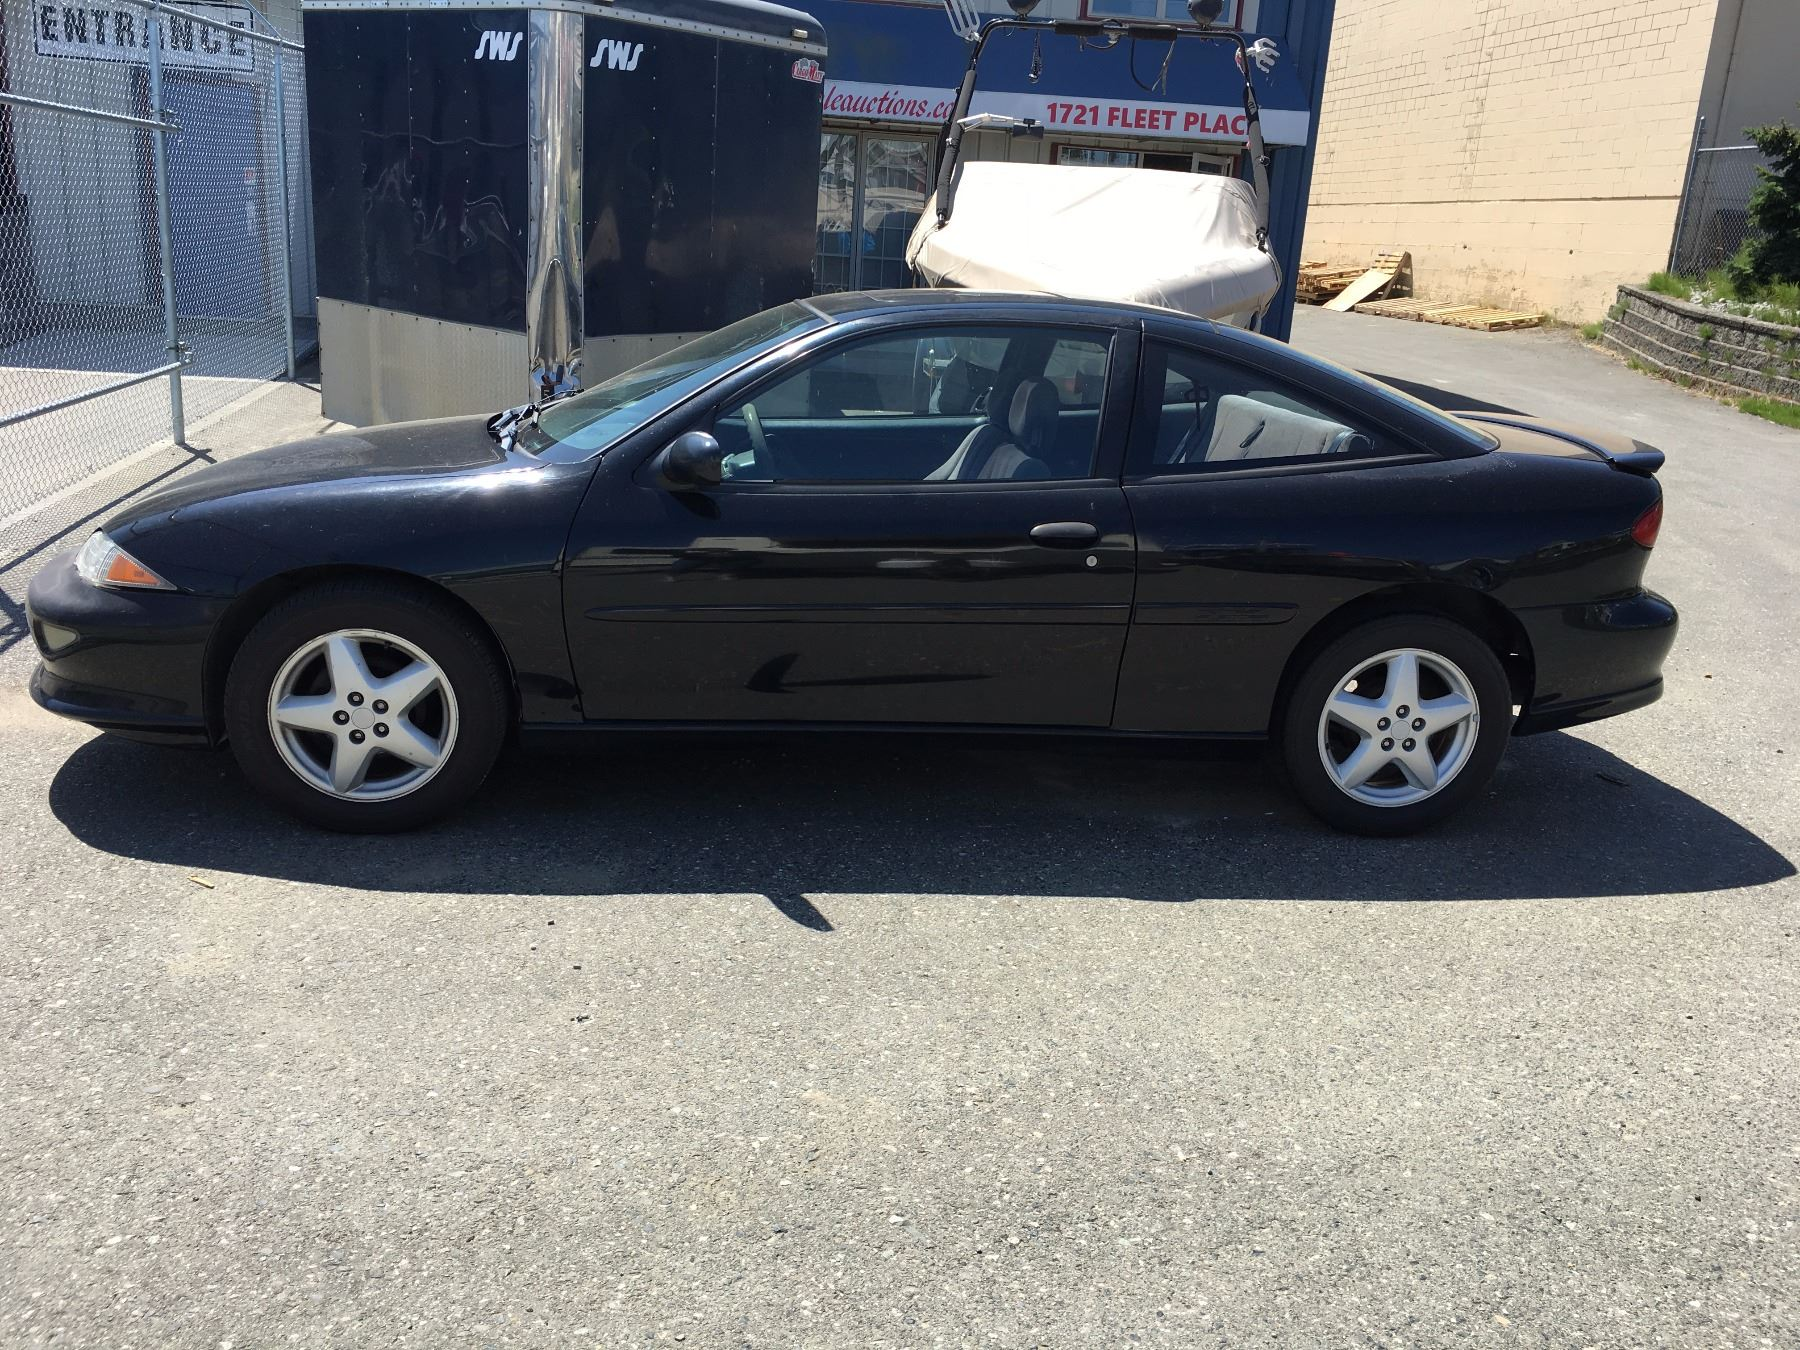 1998 Chevrolet Cavalier Z24 Black Vin 1g1jf12t2w7291142 Odo 226965 Kms Gas 5 Speed Pw Pl